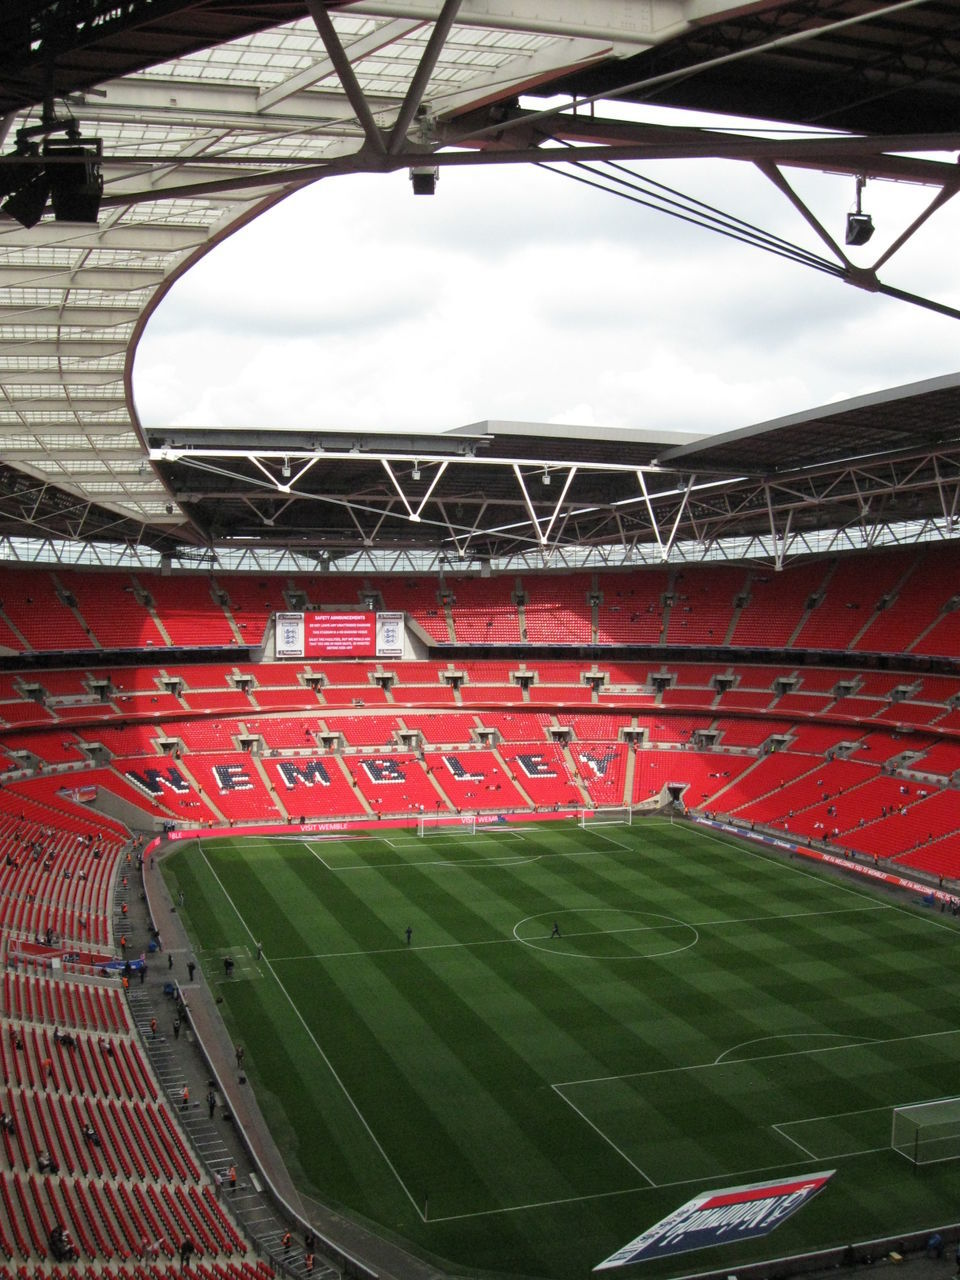 sport, stadium, grass, soccer, playing field, day, no people, soccer field, outdoors, sports team, sky